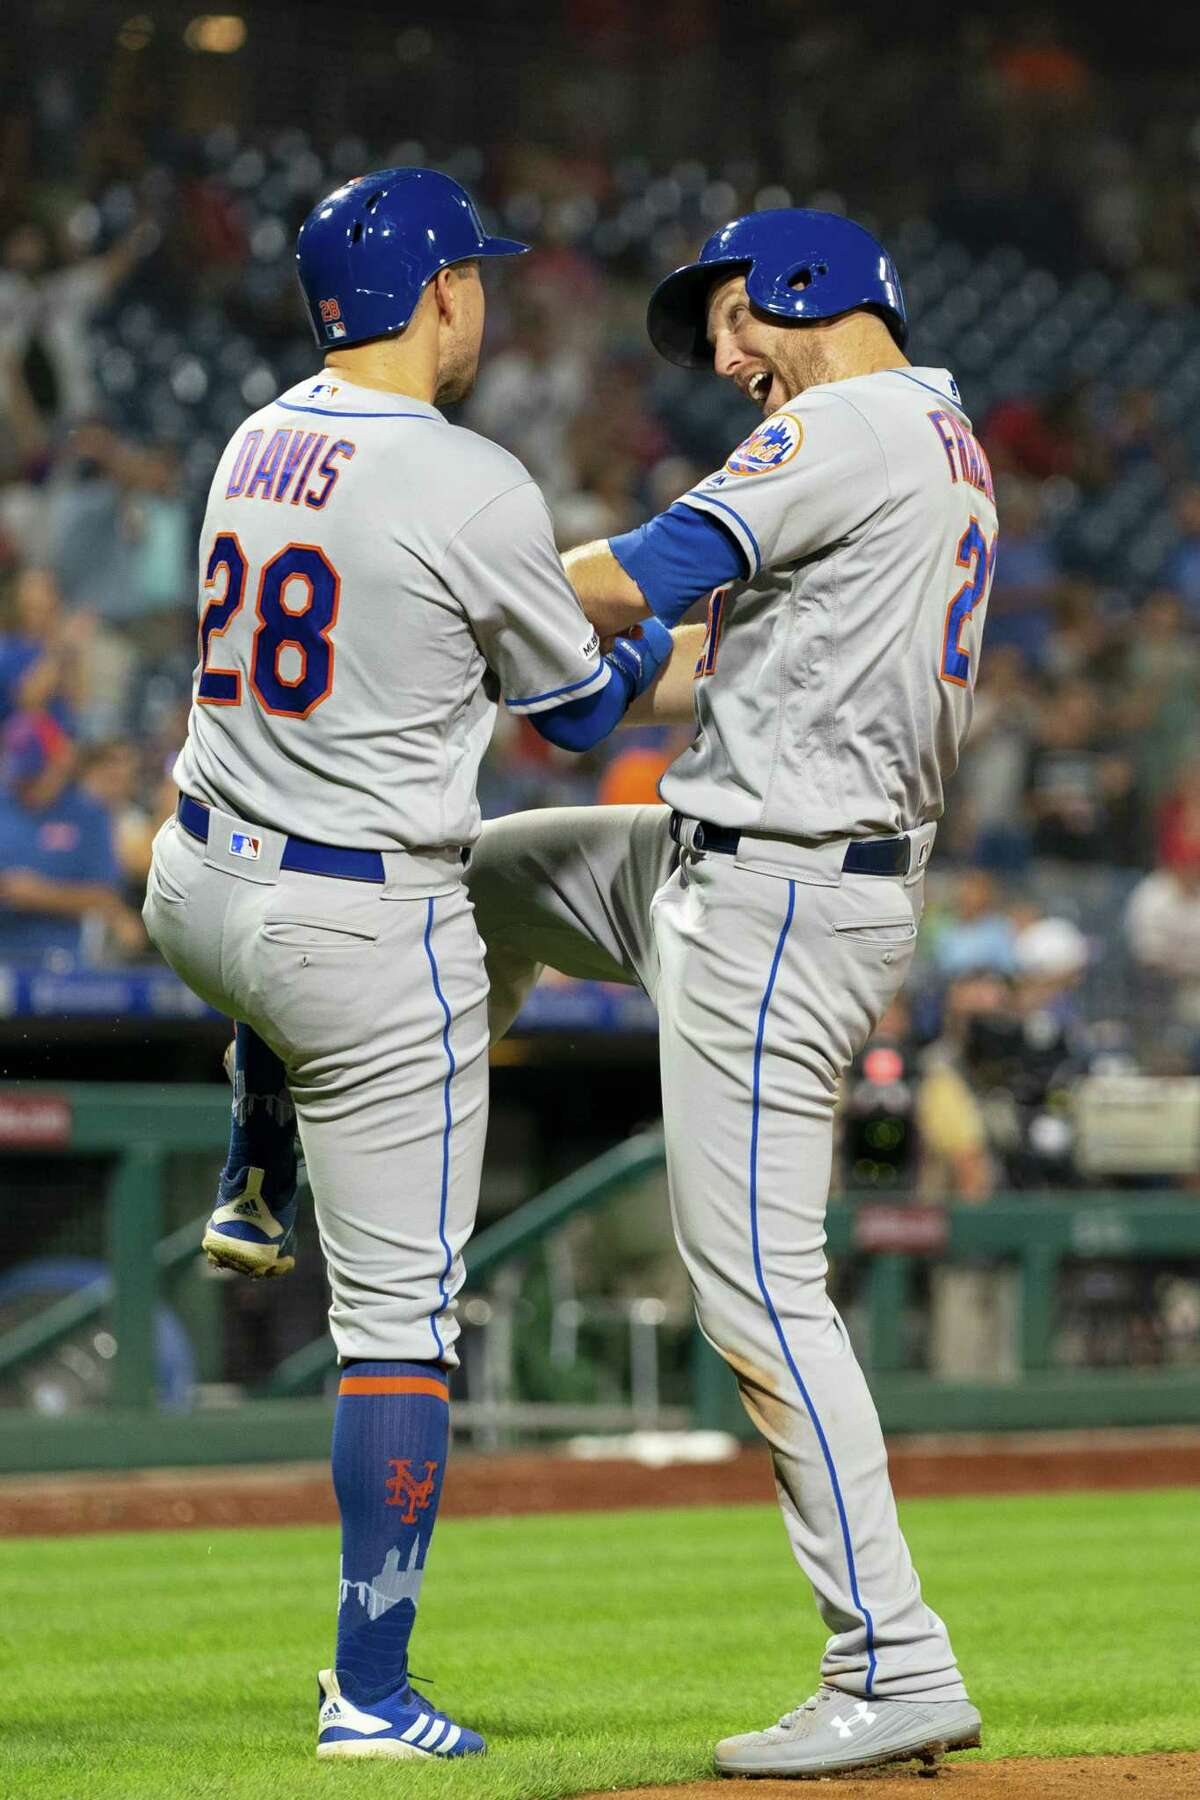 PHILADELPHIA, PA - AUGUST 30: Todd Frazier #21 of the New York Mets celebrates with J.D. Davis #28 after hitting a three run home run in the top of the ninth inning against the Philadelphia Phillies at Citizens Bank Park on August 30, 2019 in Philadelphia, Pennsylvania. The Mets defeated the Phillies 11-5. (Photo by Mitchell Leff/Getty Images)